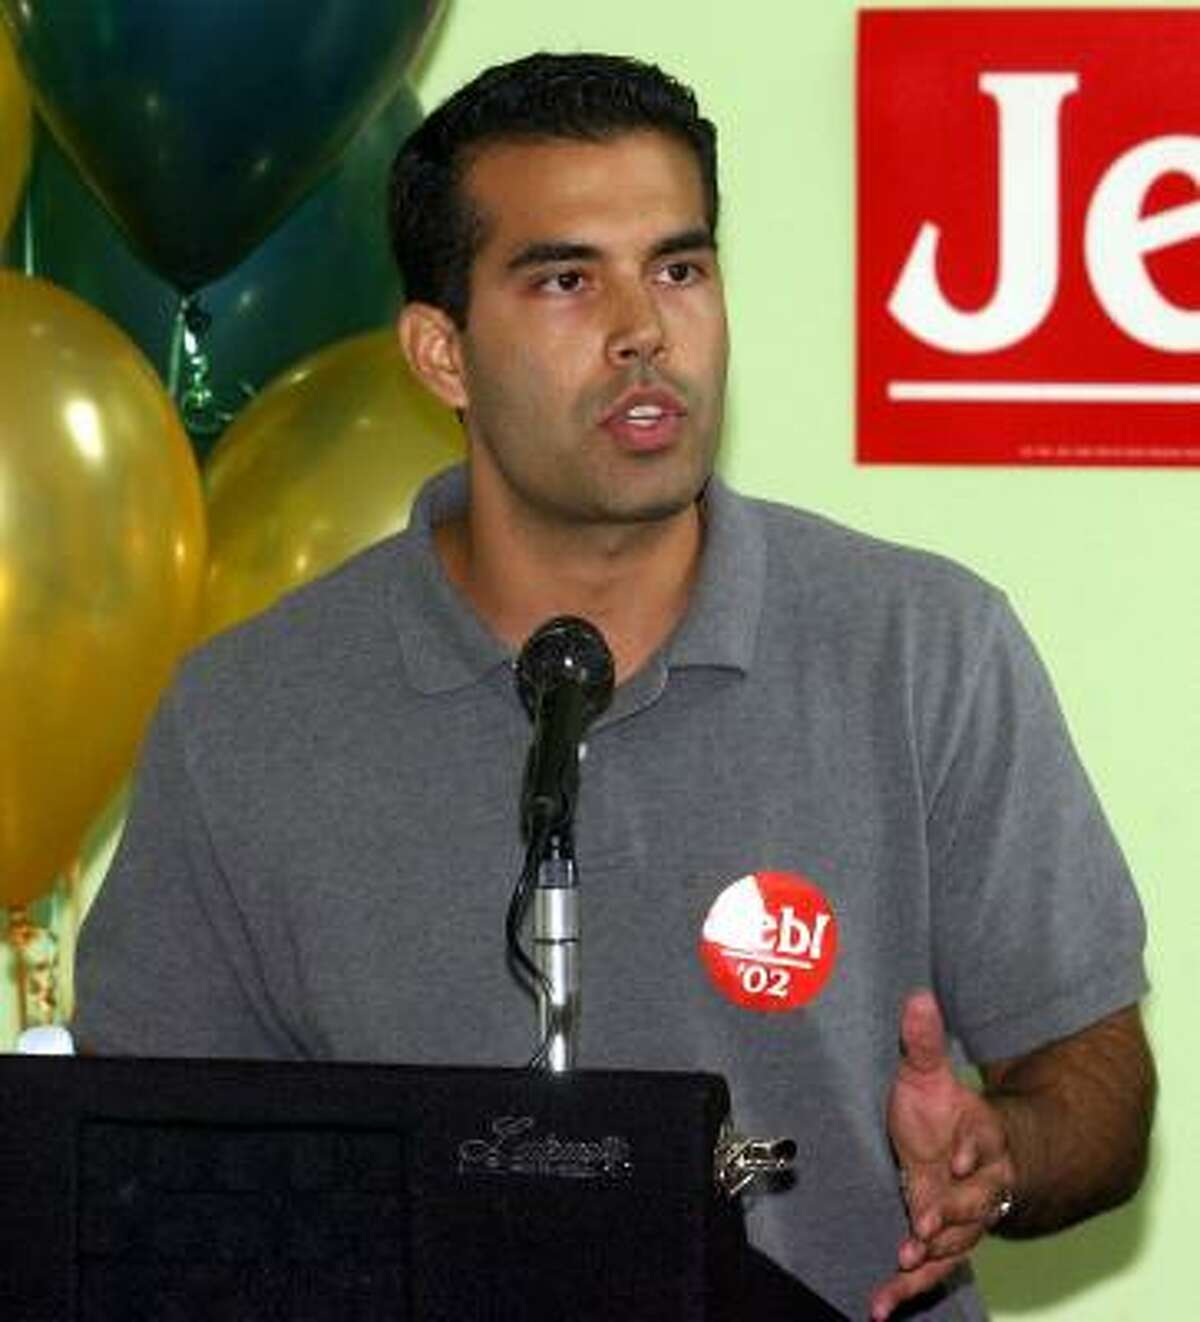 GEORGE P. BUSH The 32-year-old son of Florida Gov. Jeb Bush, who electrified the 2000 Republican convention, has moved to Austin and is being hailed as the political leader of the next generation of Bushes. He's an attorney and real estate developer.